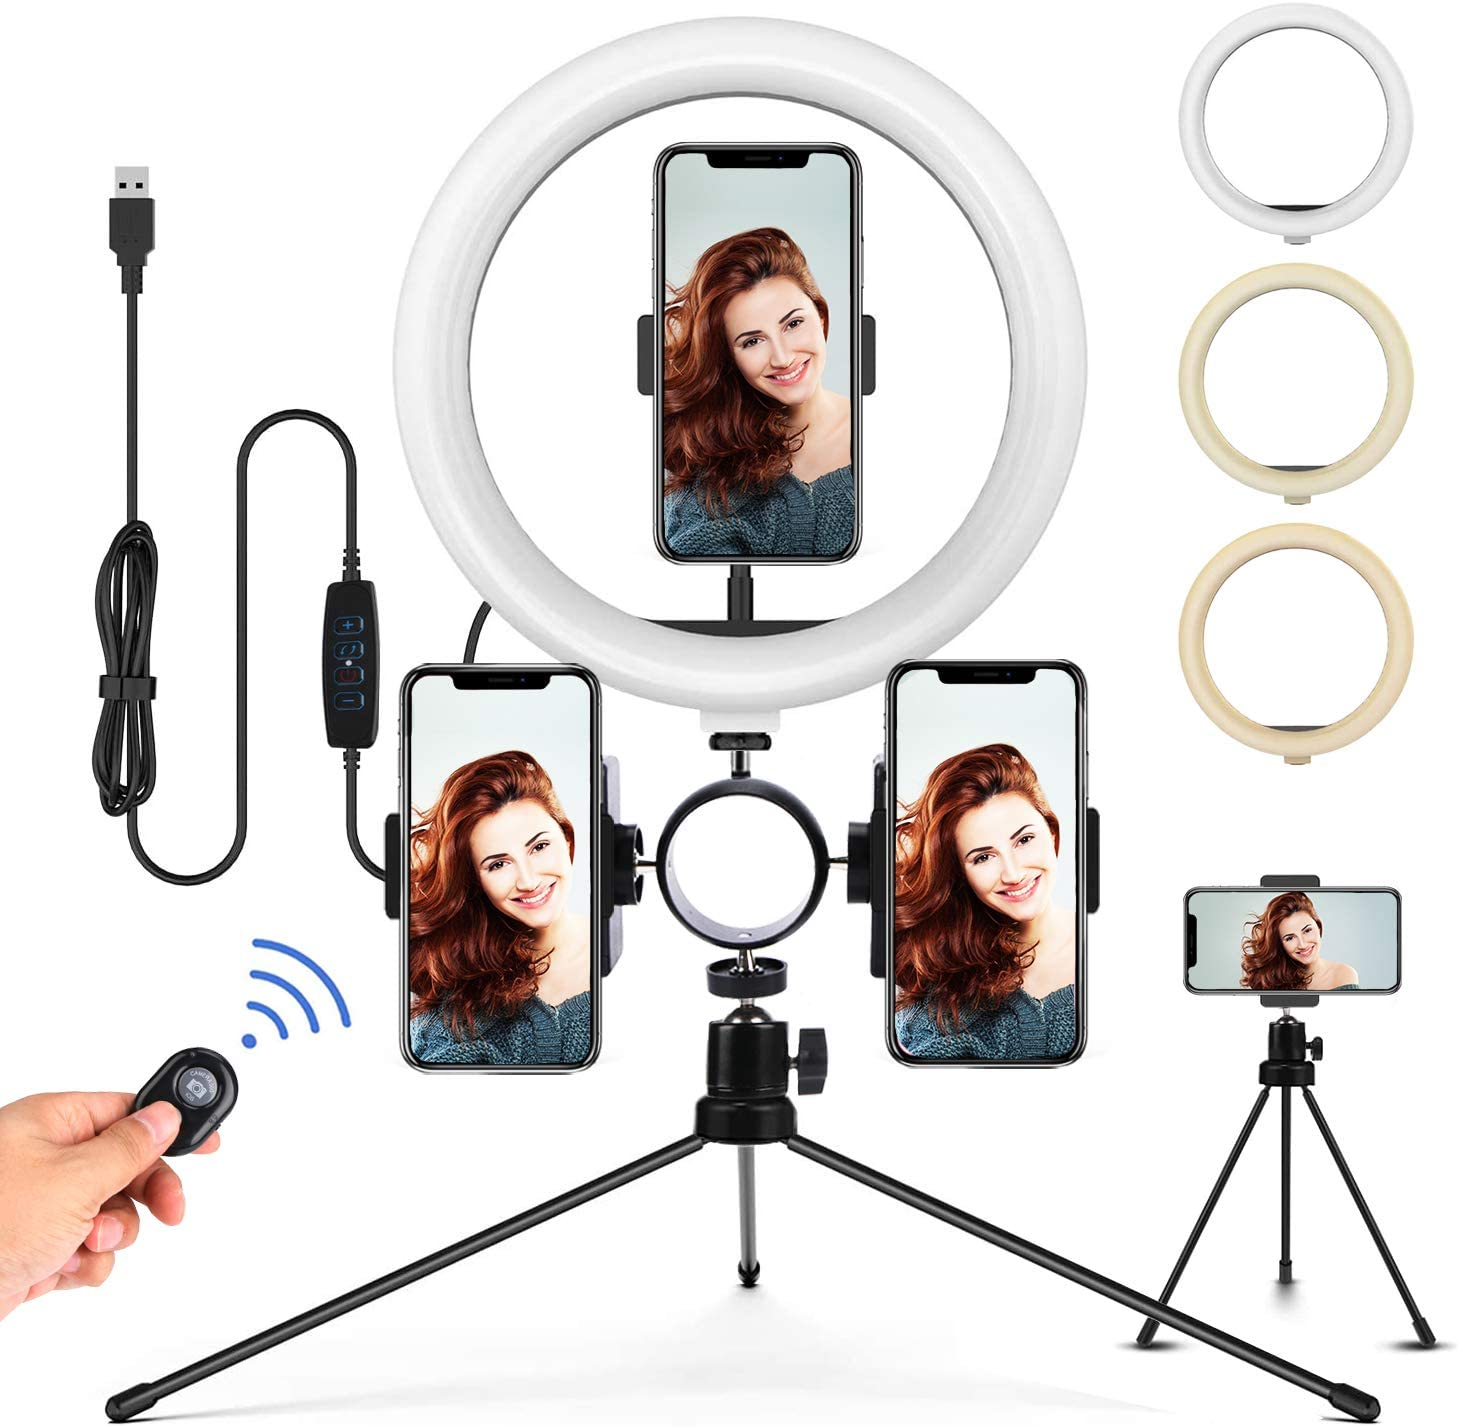 Phone LED Ring Light with Stand: Desk Selfie Lights with 3 Cell Phone Holder & Tripod for Youtube Video Recording, Makeup and Photography | 3 Modes & 14 Level Camera Lighting | 10 Inch, iPhone/Android